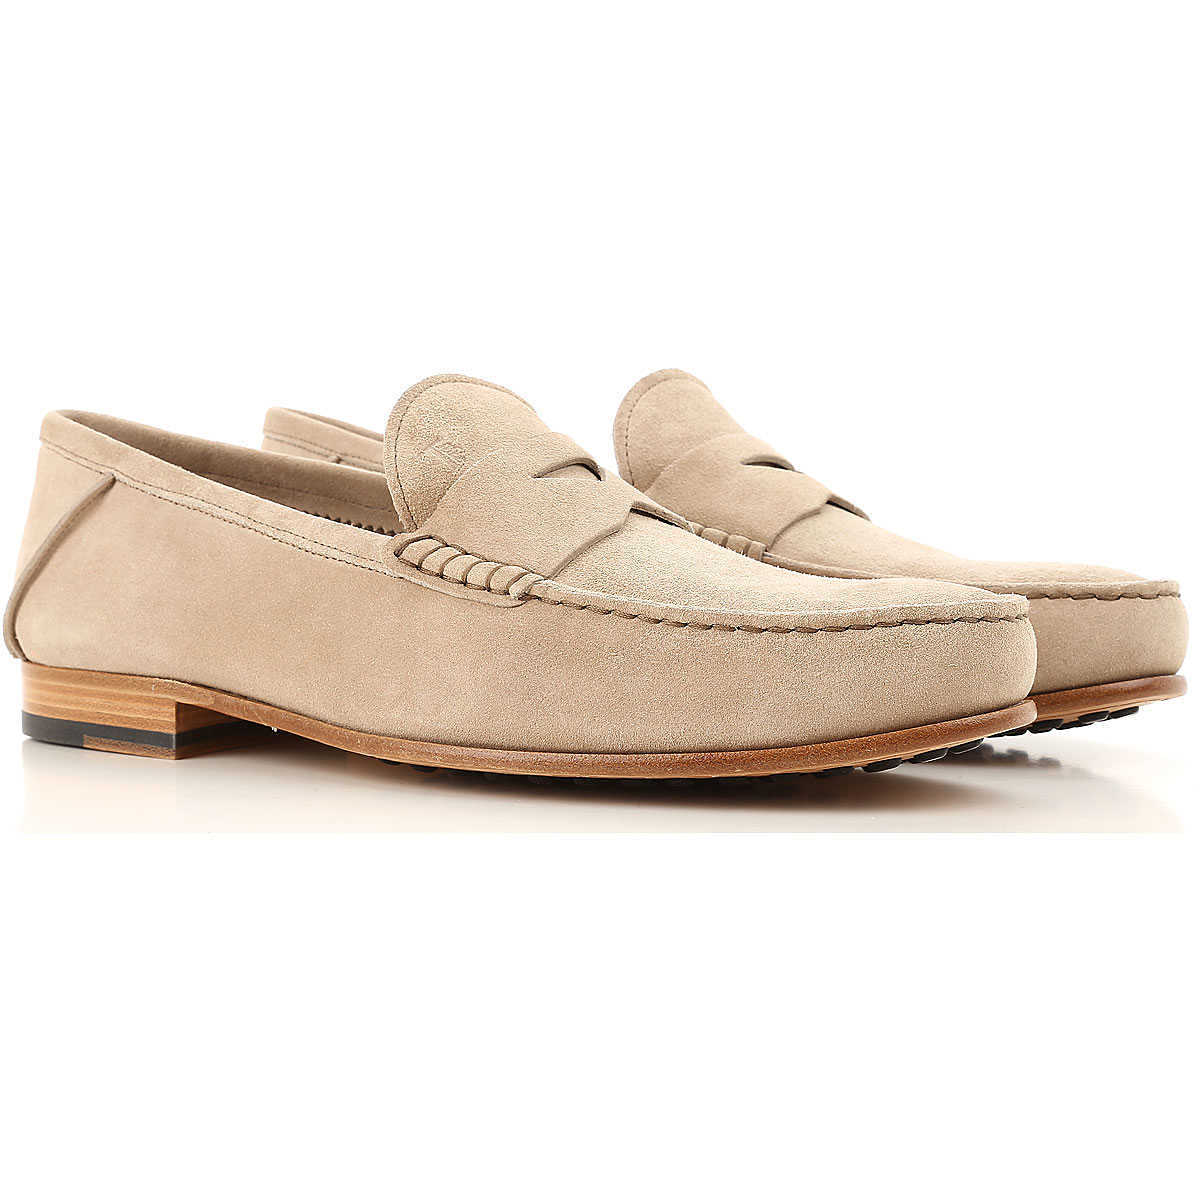 Tods Loafers for Men On Sale in Outlet Natural UK - GOOFASH